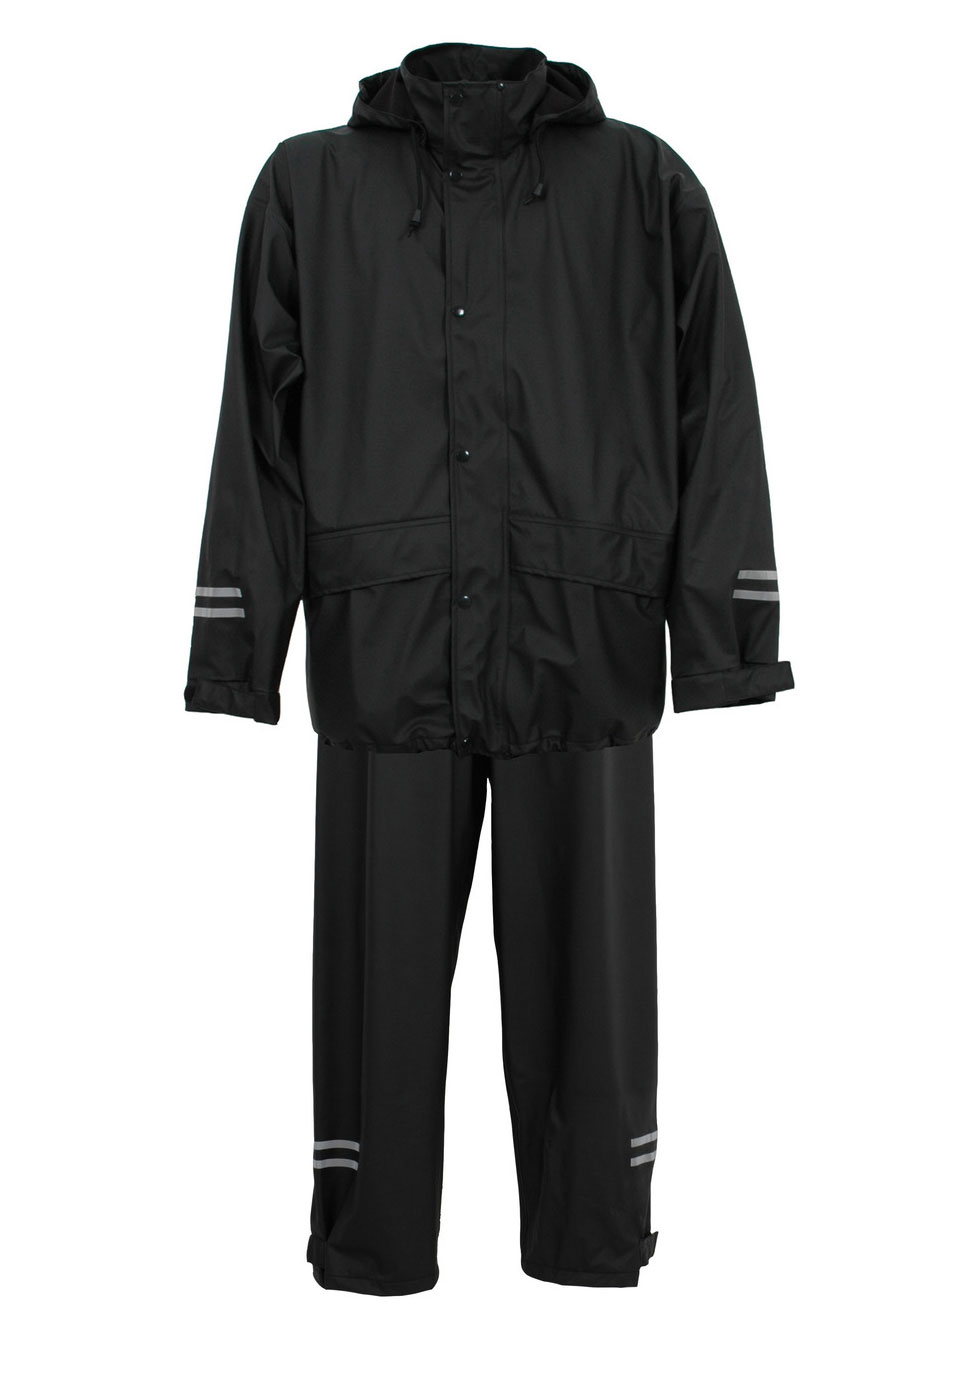 Abeko Charlie 2 piece adult rain set of jacket and trousers